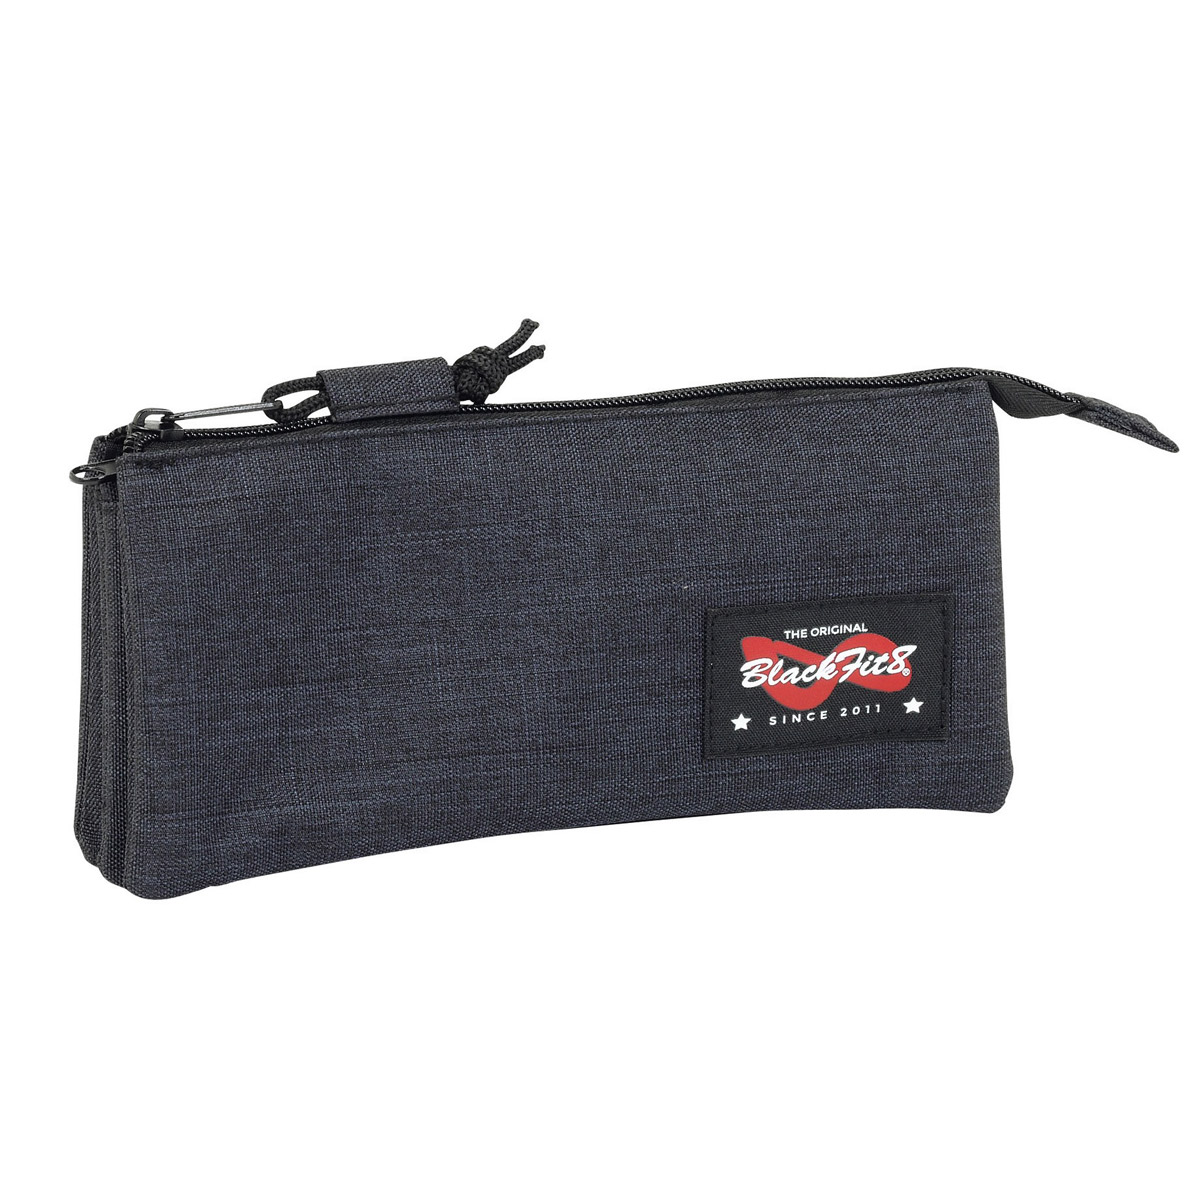 Blackfit8 Triple Pencil Case Black – image 1